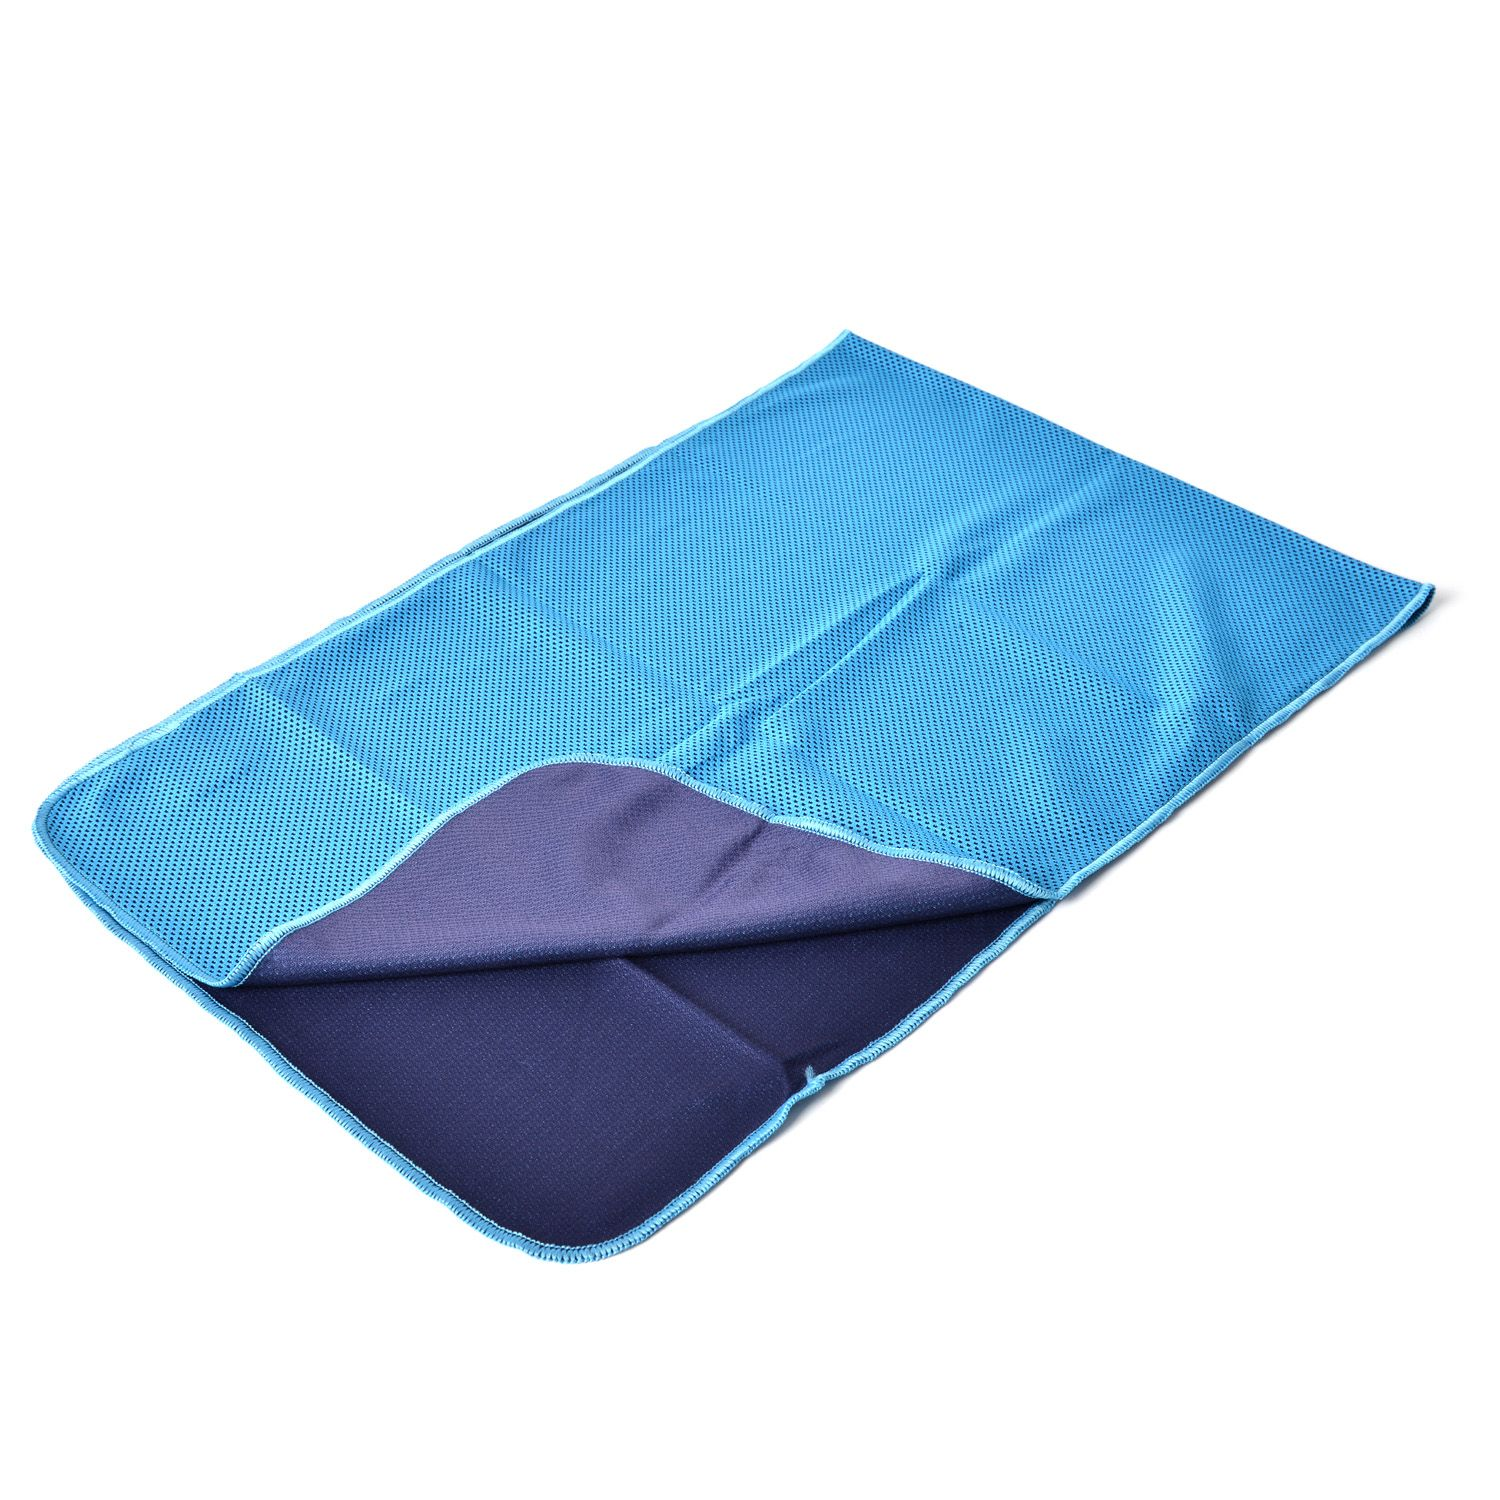 Spa Cold Towels: ICE TOWEL Set Of 3 Double Sided Reusable Cooling Towels